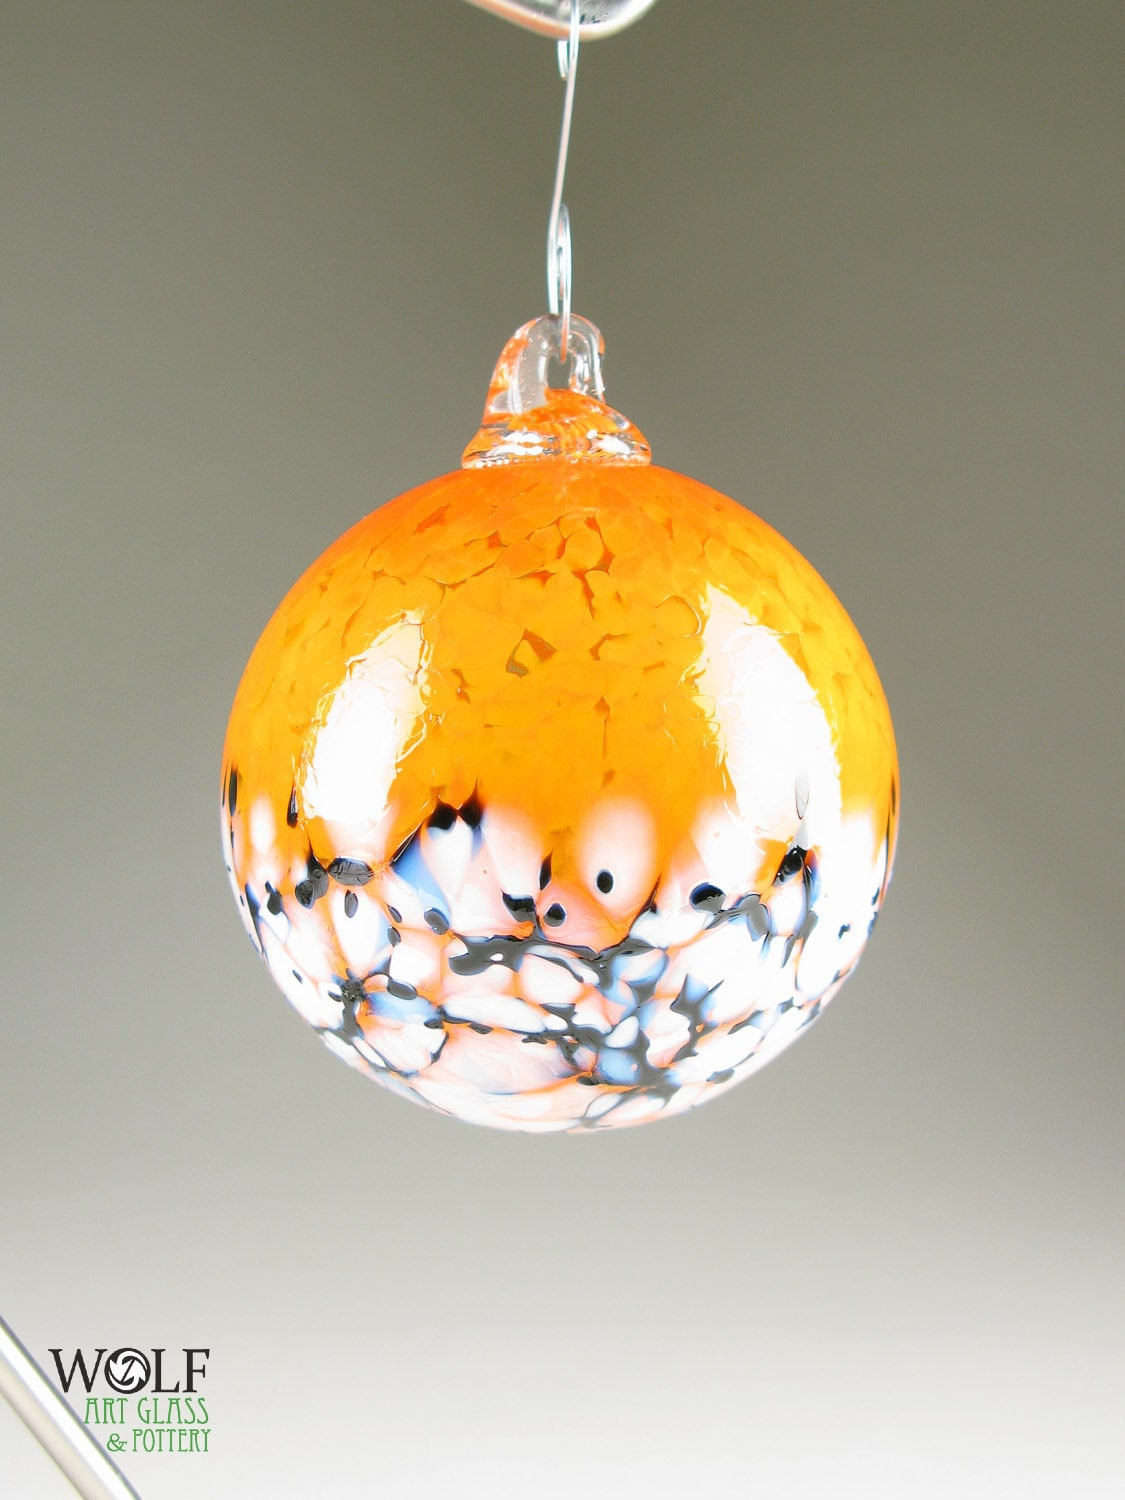 Blown glass ornament suncatcher ball tangerine orange blossom